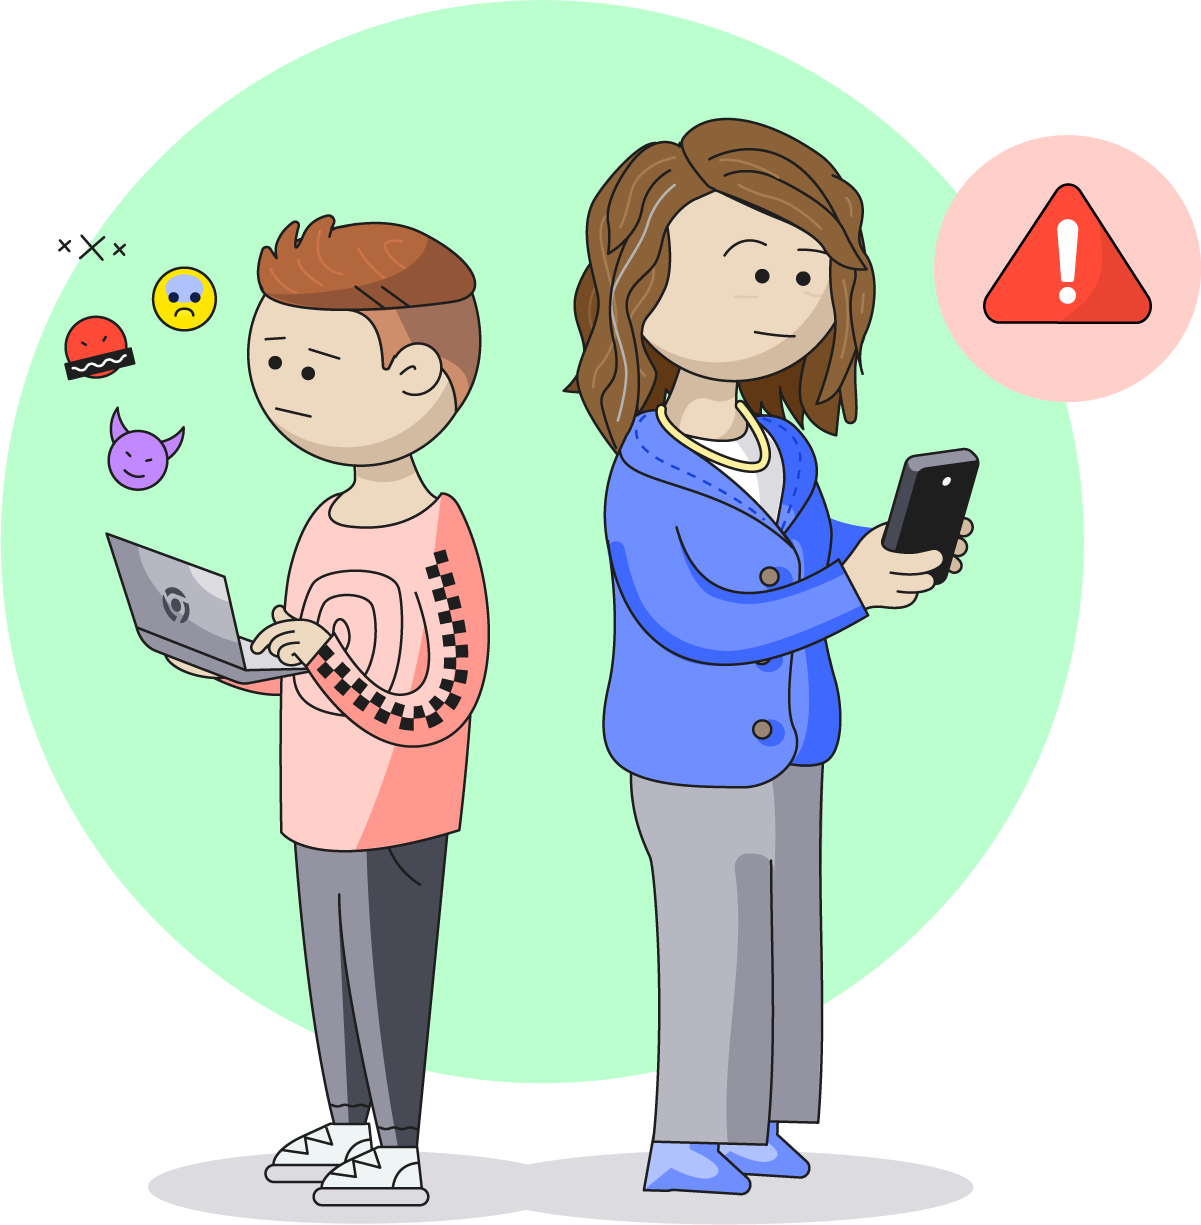 Illustration of a parent getting an alert about their child's online activity